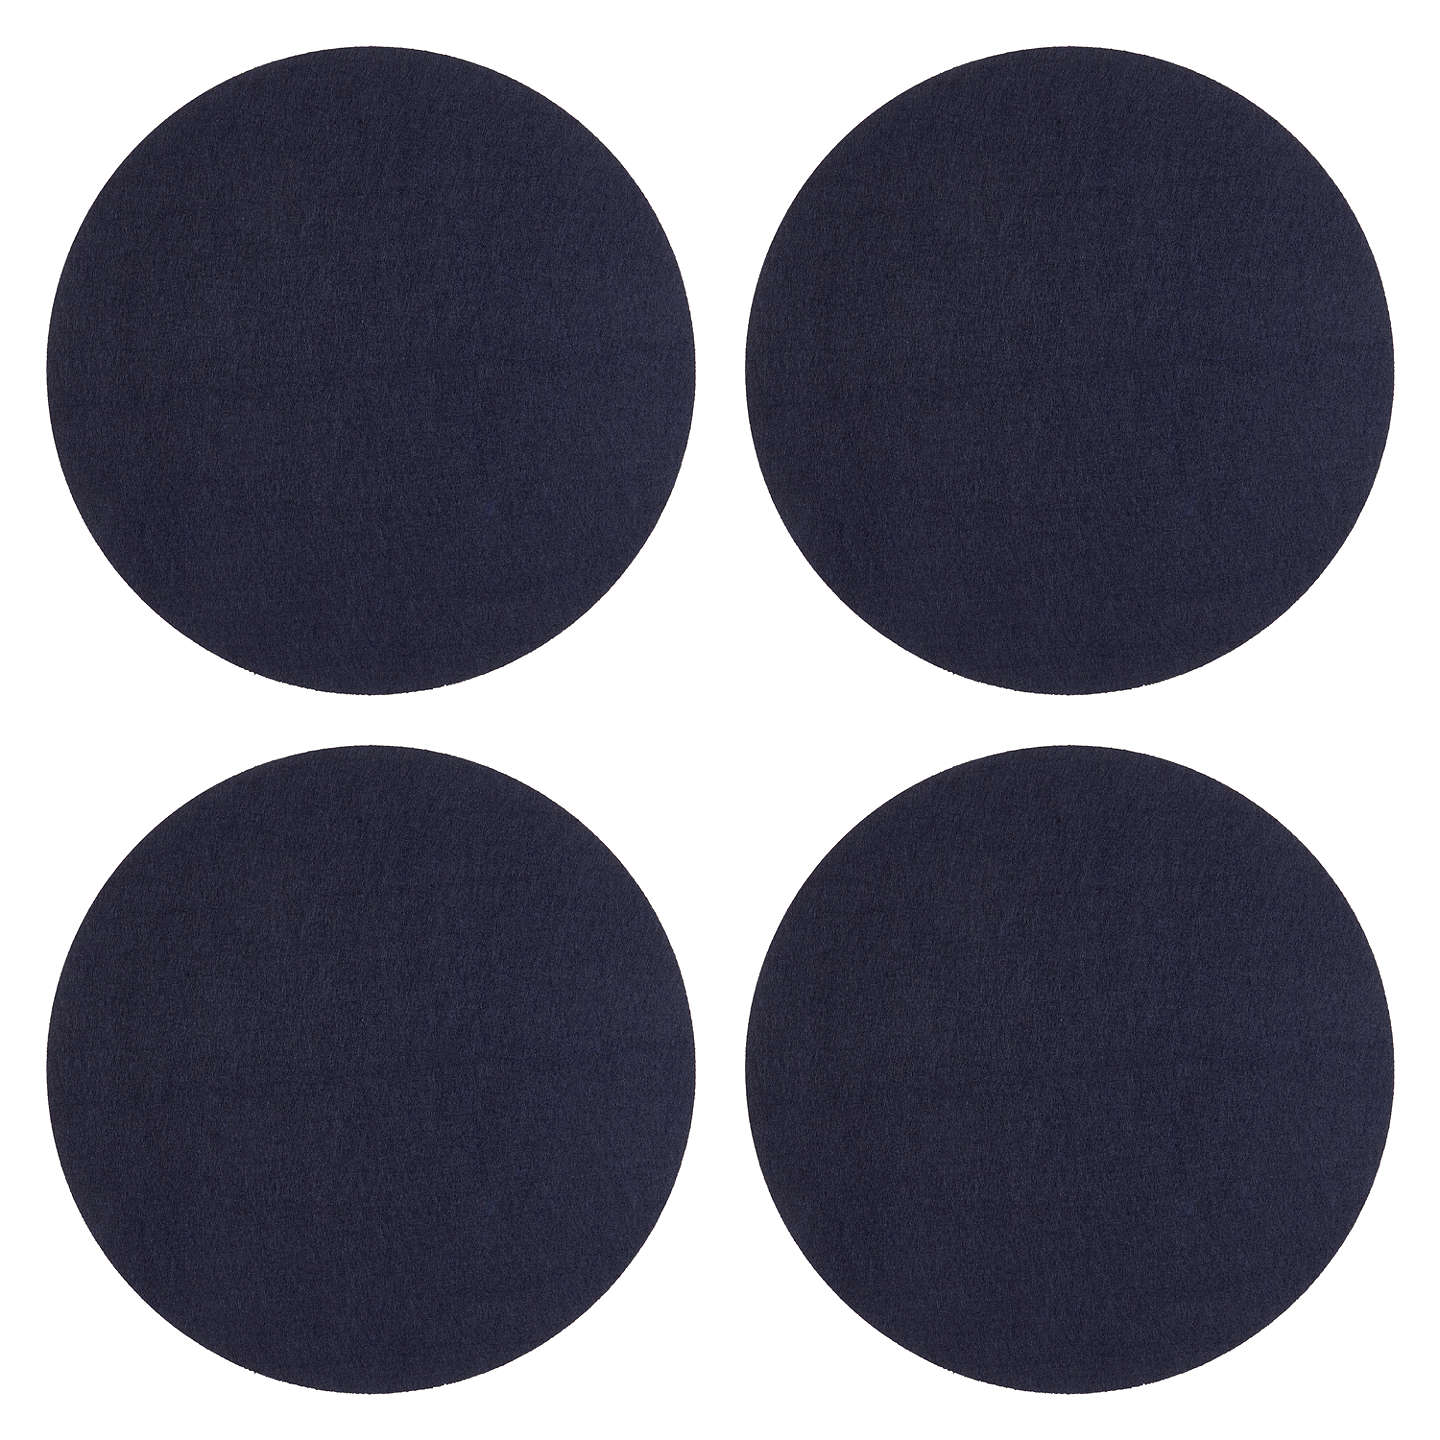 BuyHouse by John Lewis Round Felt Placemats, Set of 4, Navy Online at johnlewis.com